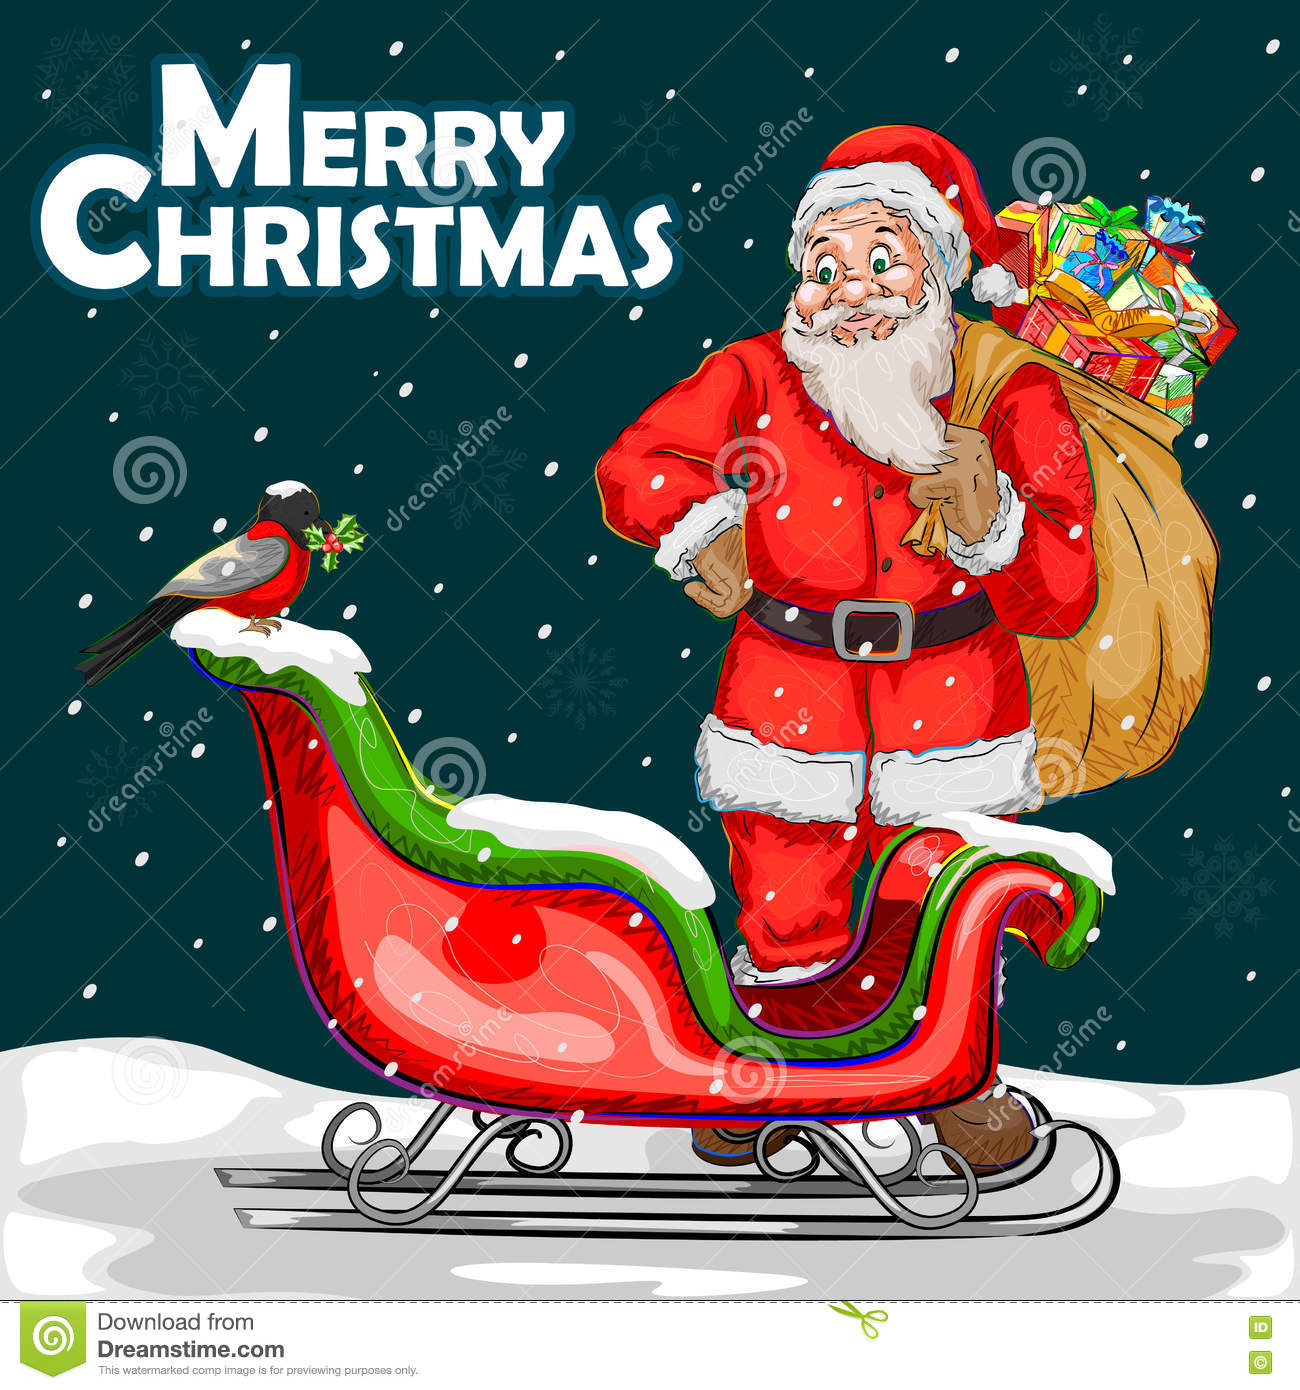 Merry Christmas Festival Celebration Background Stock ...